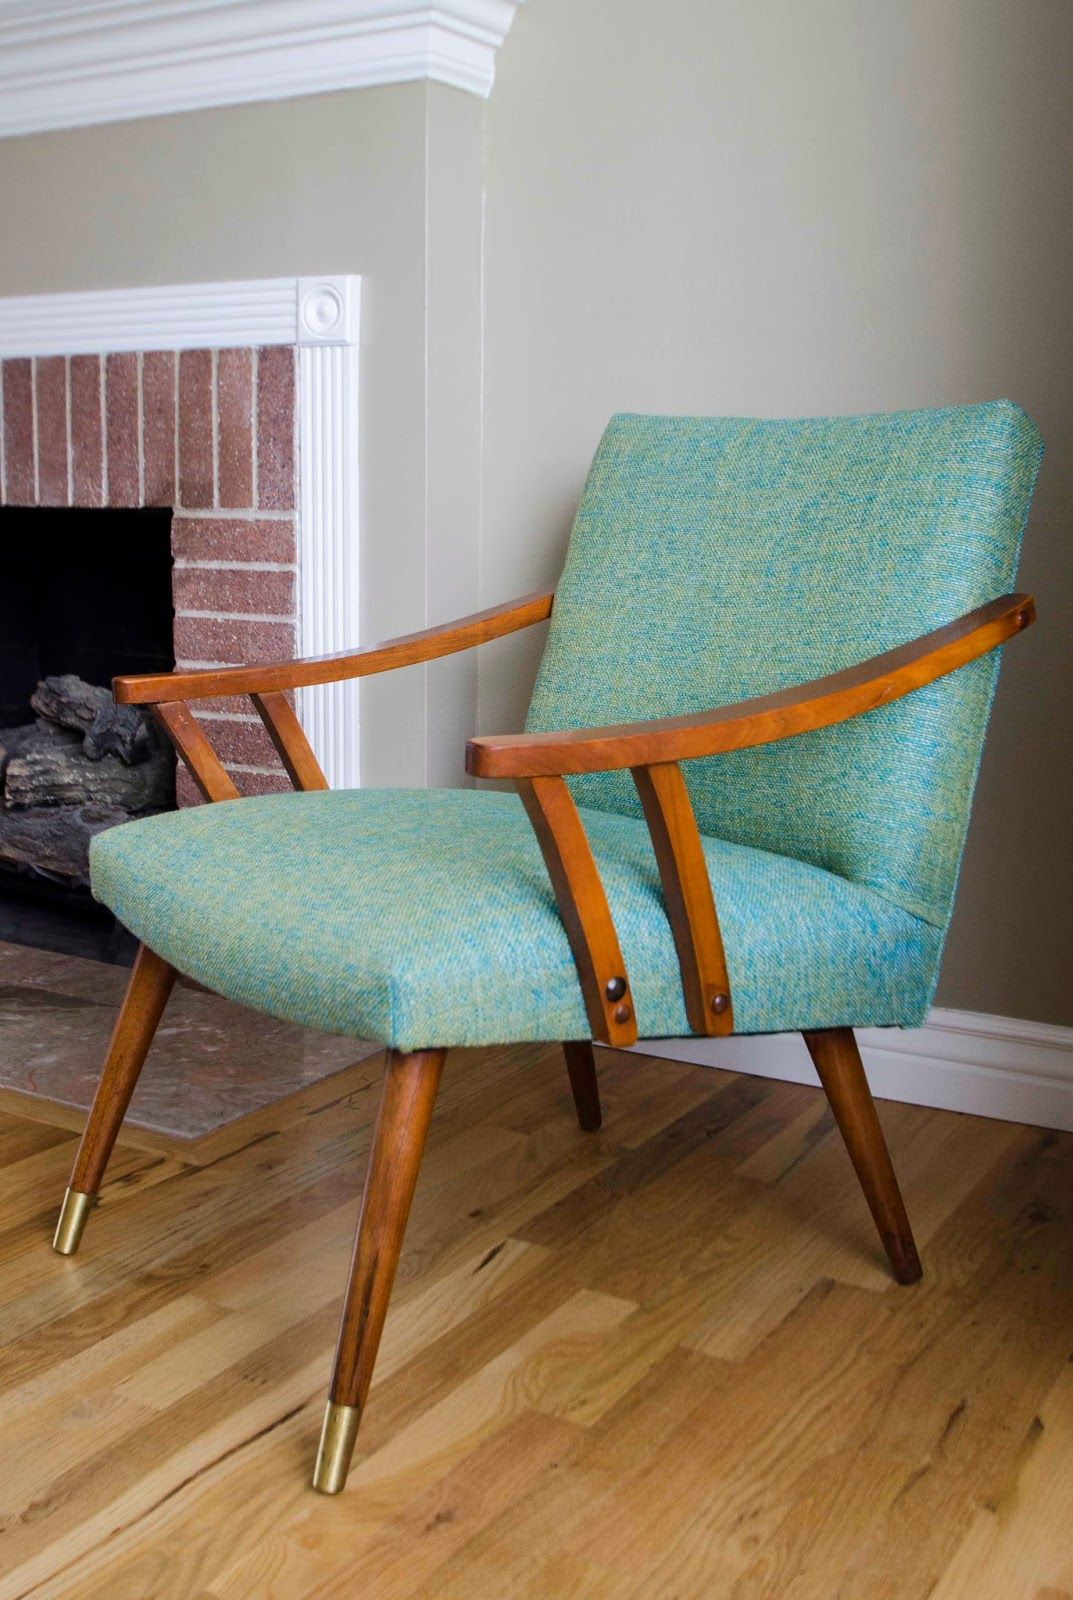 Prime Mid Century Modern Accent Chair Blue Green Upholstery Gmtry Best Dining Table And Chair Ideas Images Gmtryco